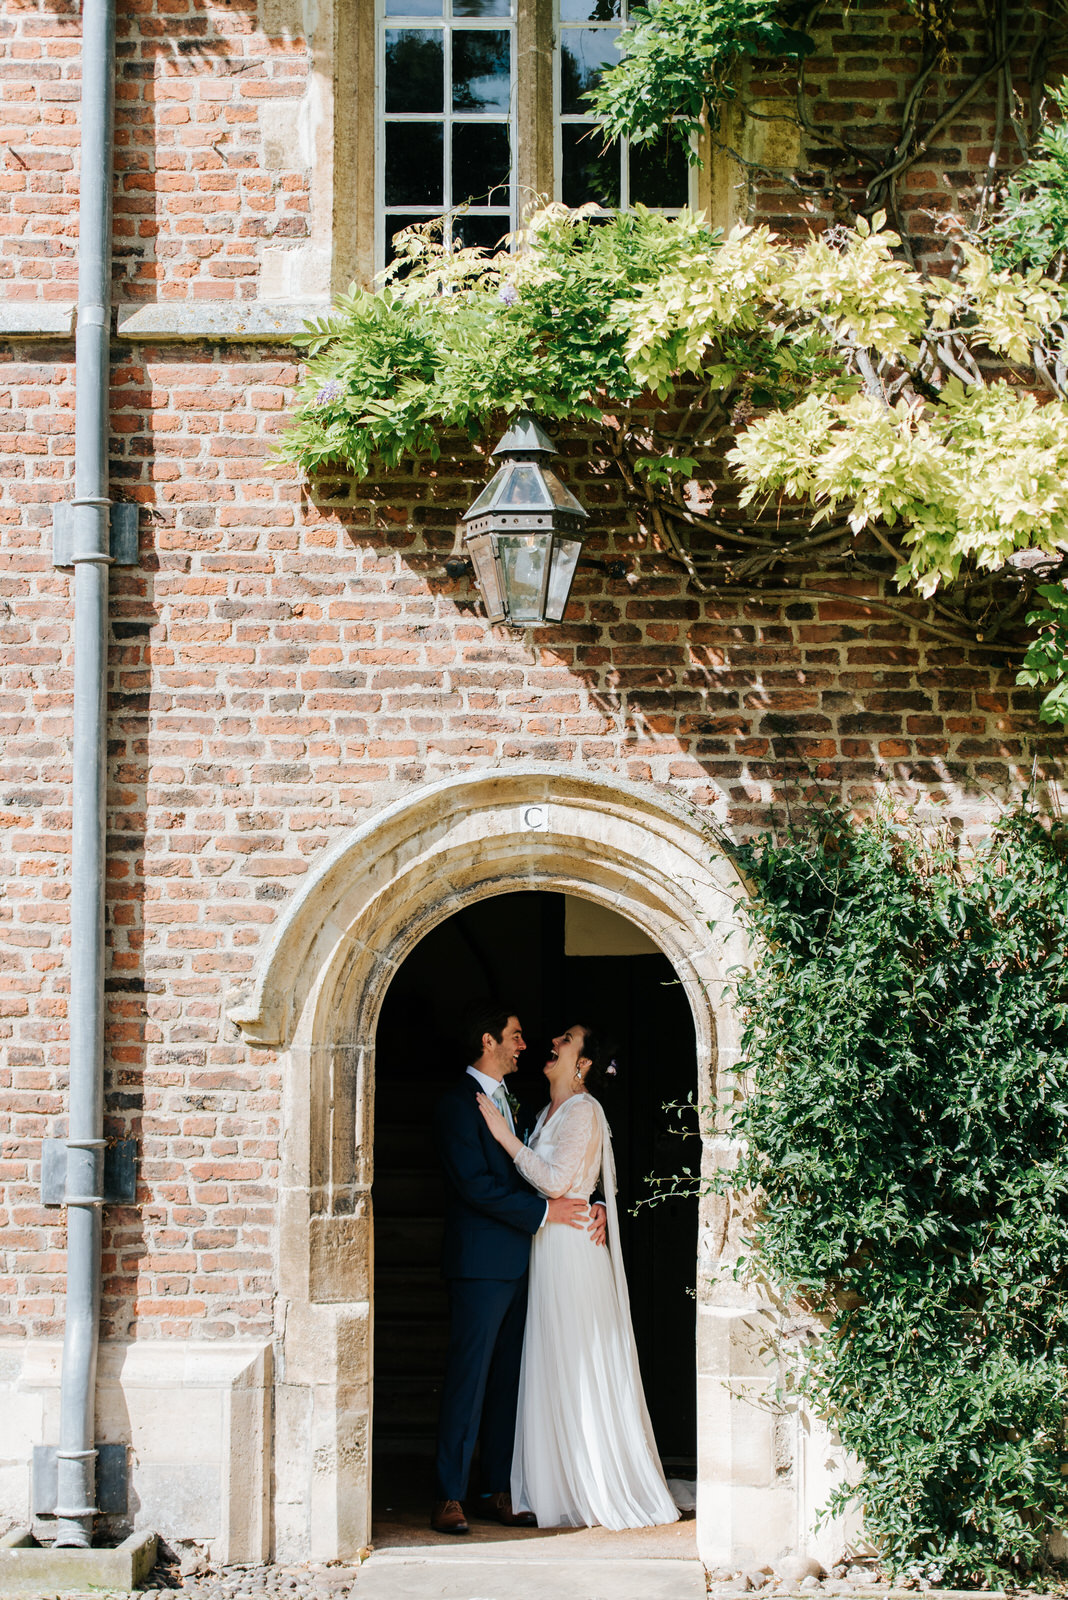 Bride and groom embrace each other under concrete arch at Jesus